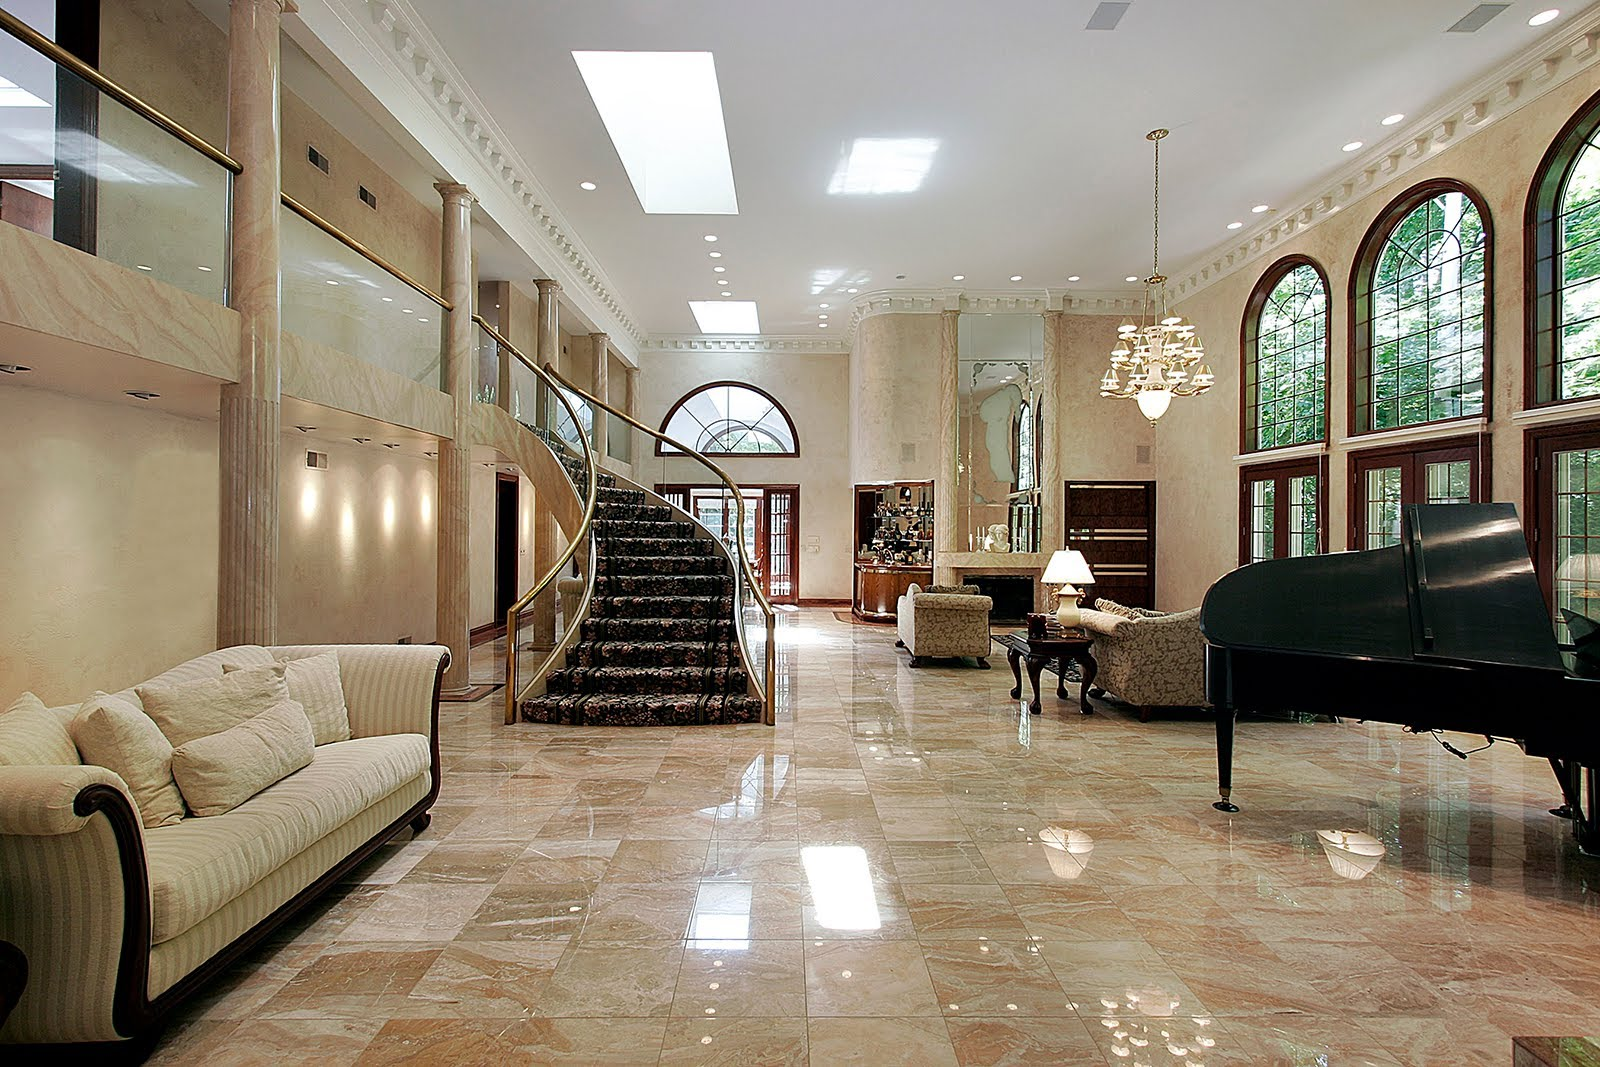 Homes With Marble Floors : Know about italian marble types for home décor my decorative